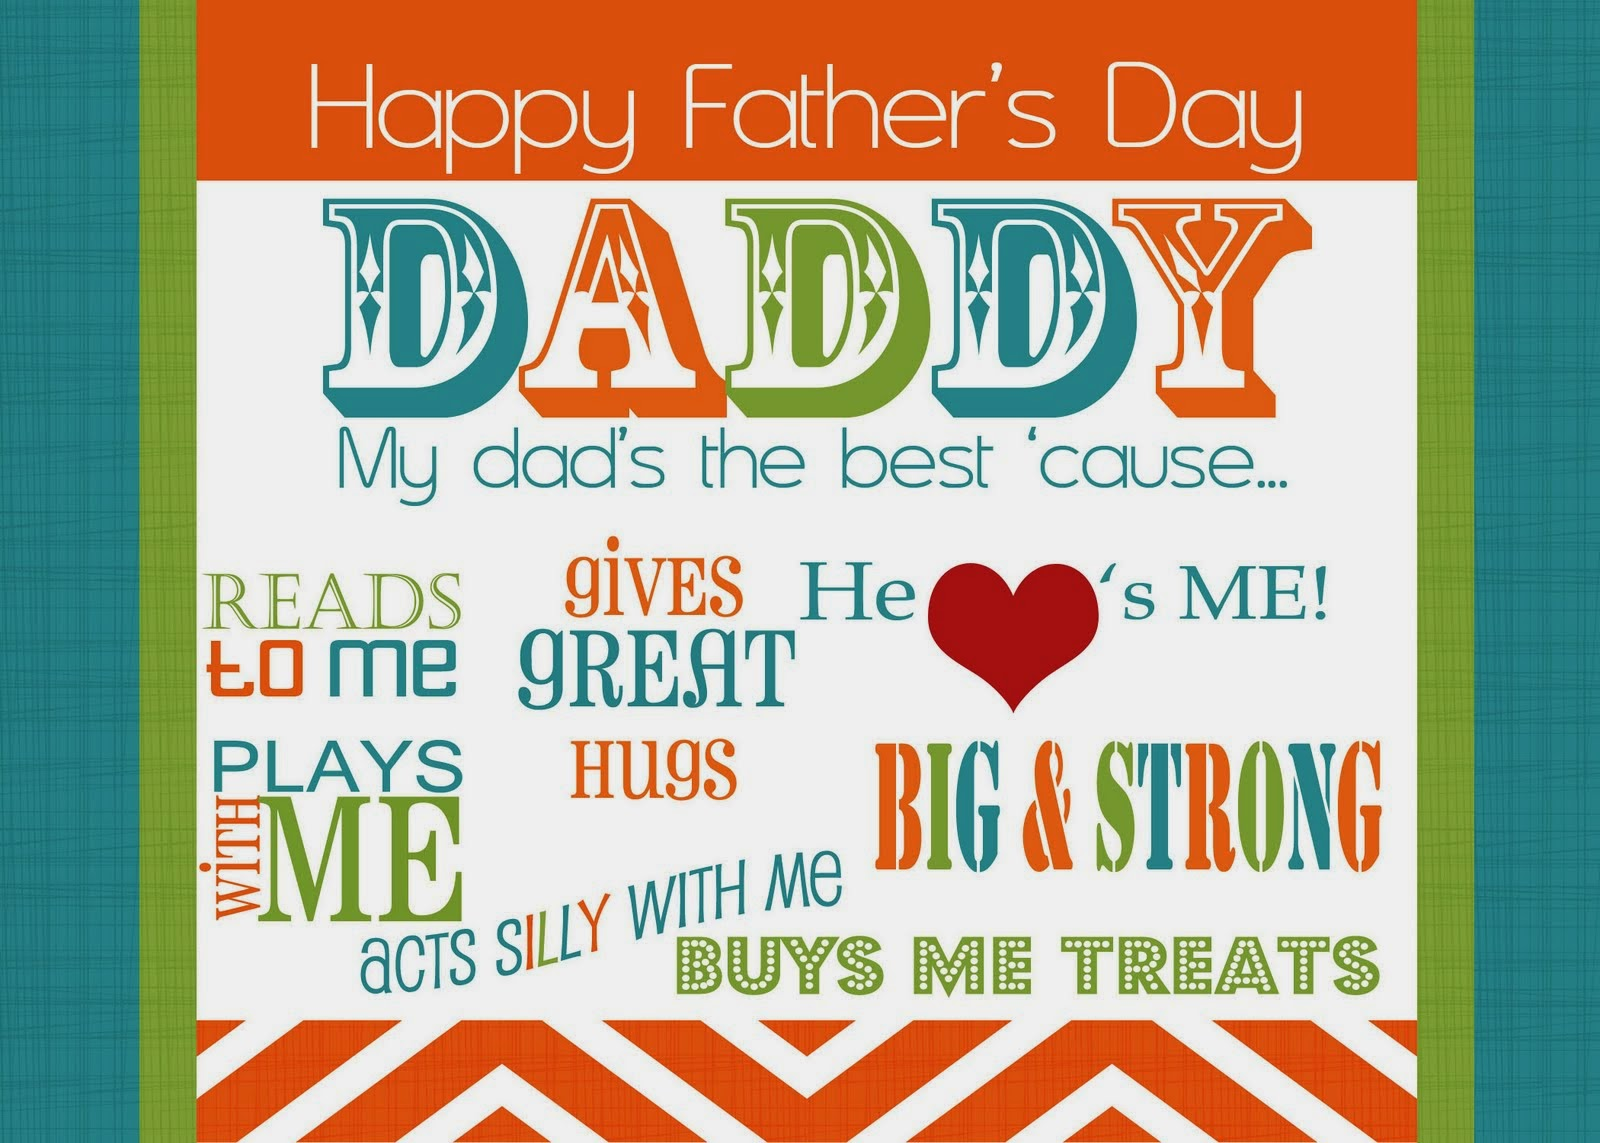 Happy Father's Day 2014 | Diva Likes